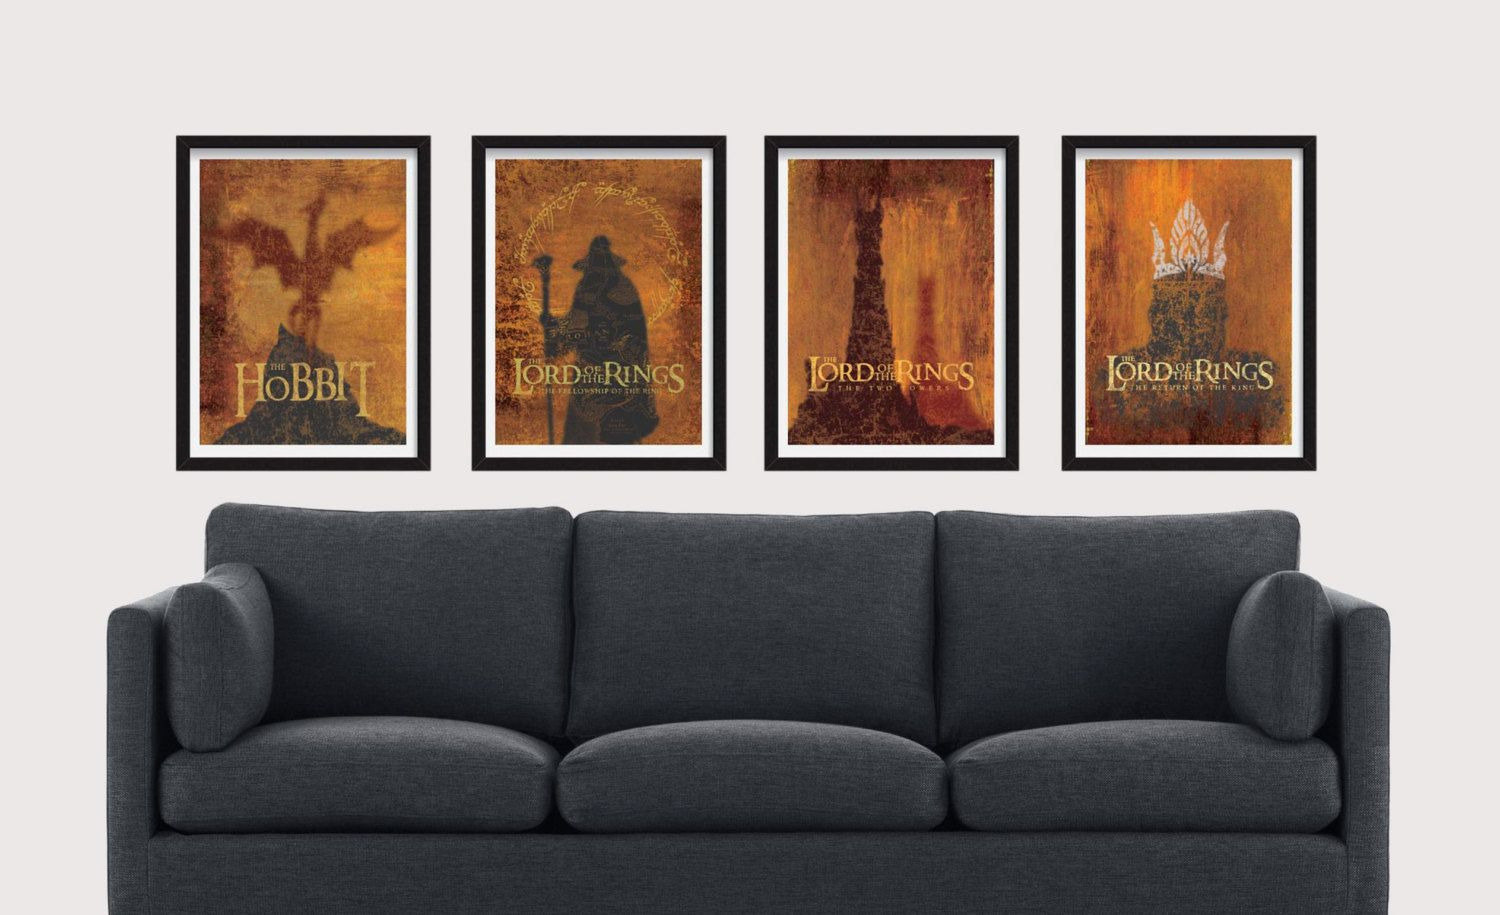 8 5 X 11 Tolkien Set Includes 4 Premium Prints For The Hobbit And The Lord Of The Rings Trilogy By J R R Tolkien Prints Poster Living Furniture